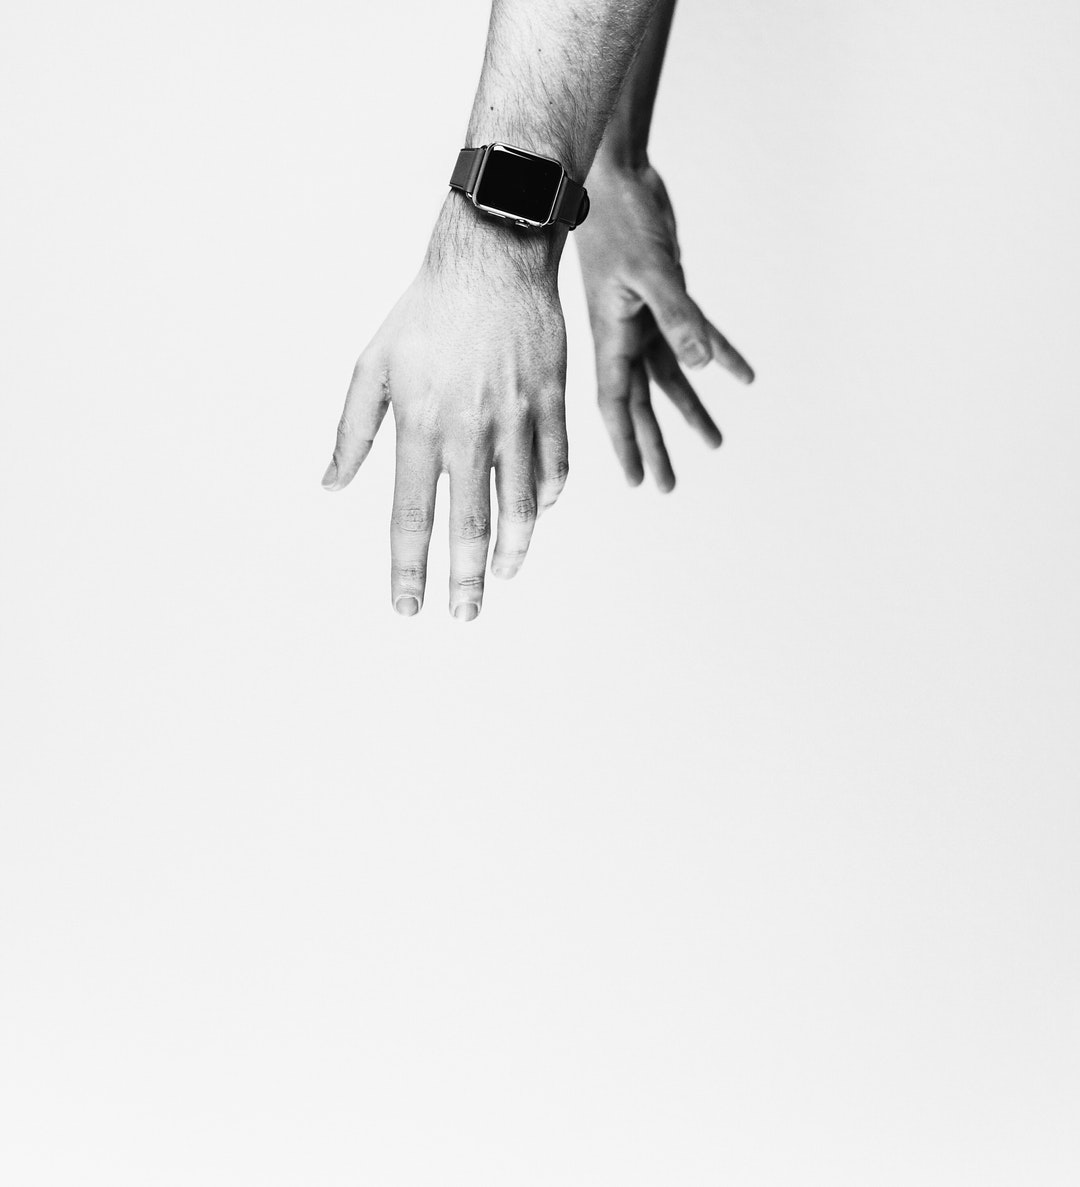 The hands of a person wearing an Apple Watch in black and white